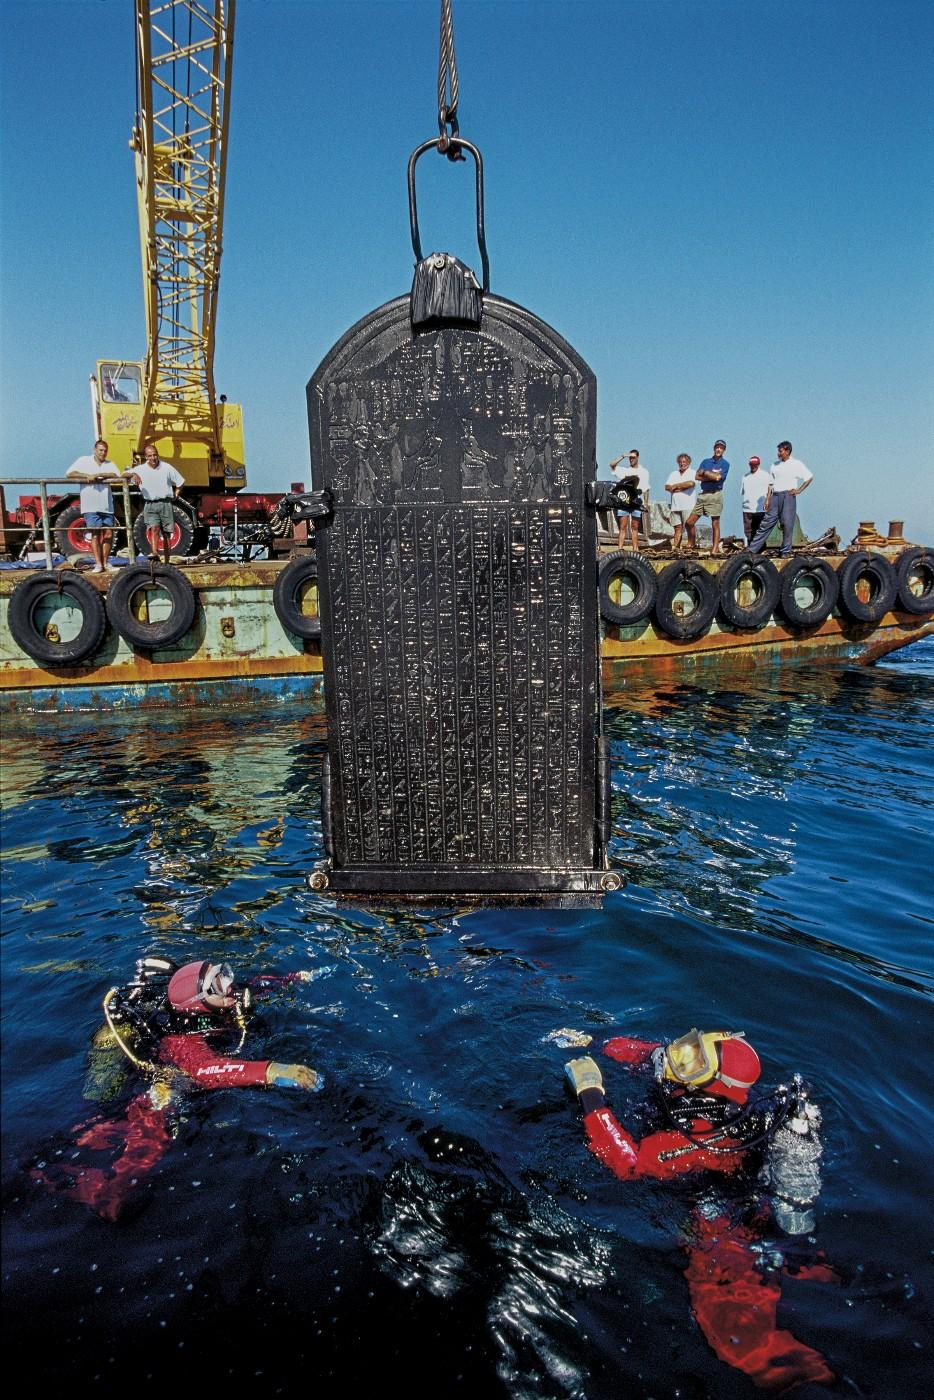 The stele of Thonis-Heracleion being raised out of the waters of the Bay Aboukir, Thonis-Heracleion, Aboukir Bay, Egypt